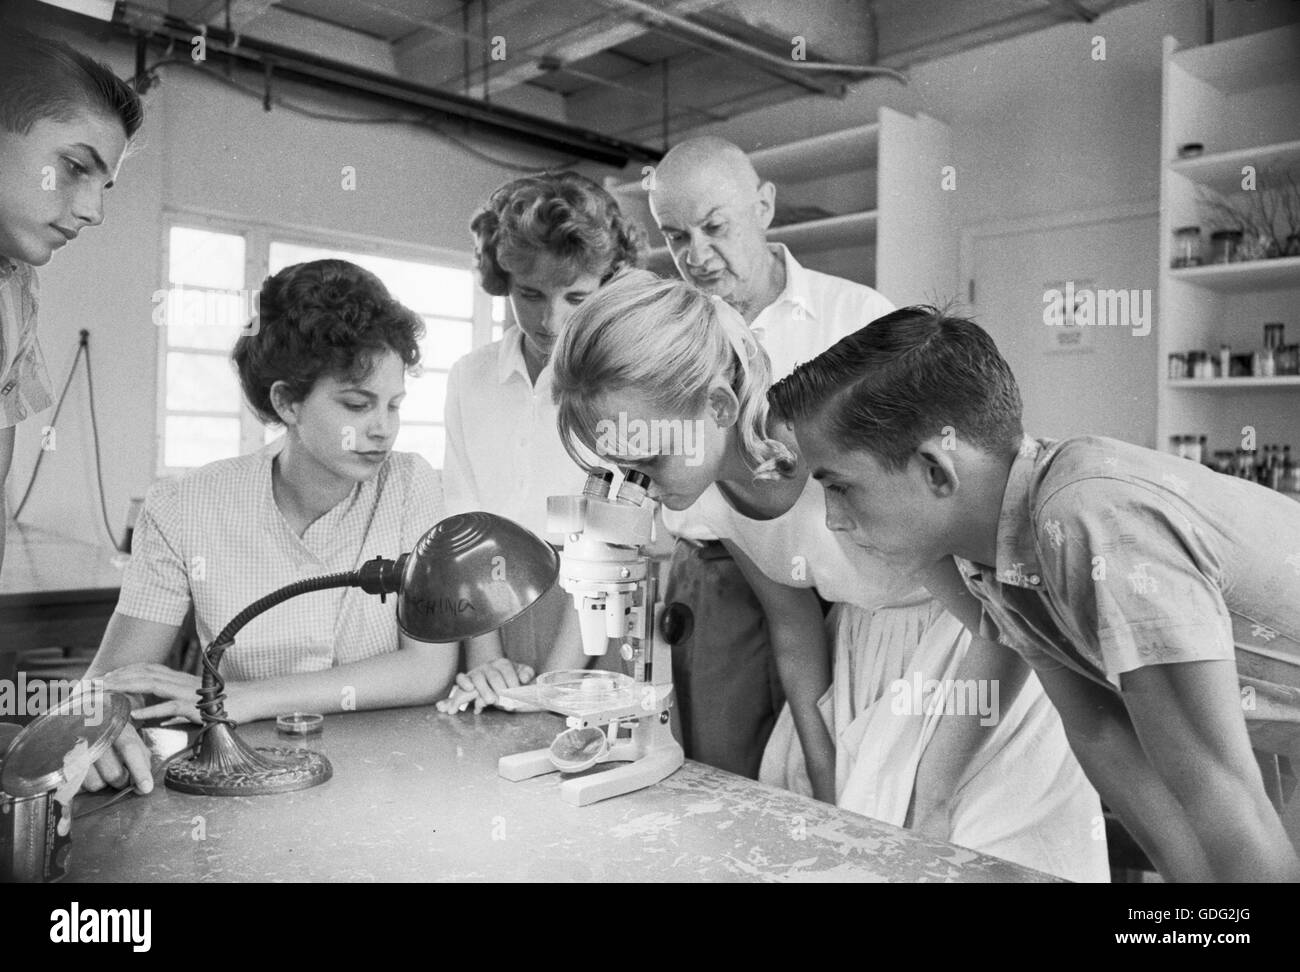 Roman Vishniac in his lab, with students, 1961 - Stock Image